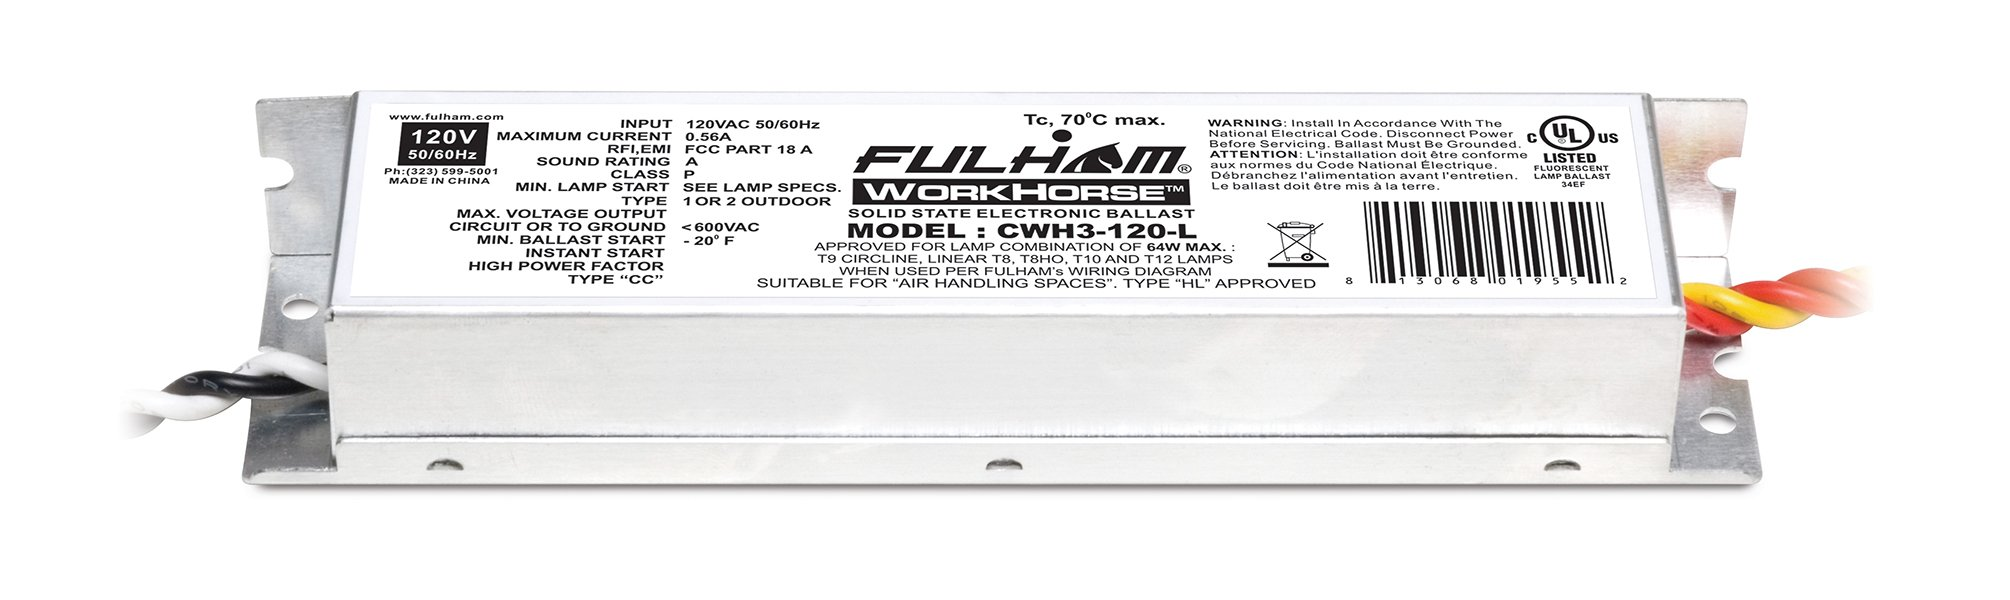 Fulham Lighting CWH3-120-L Canada Series-Workhorse 3-120V-Linear Model with Side Leads